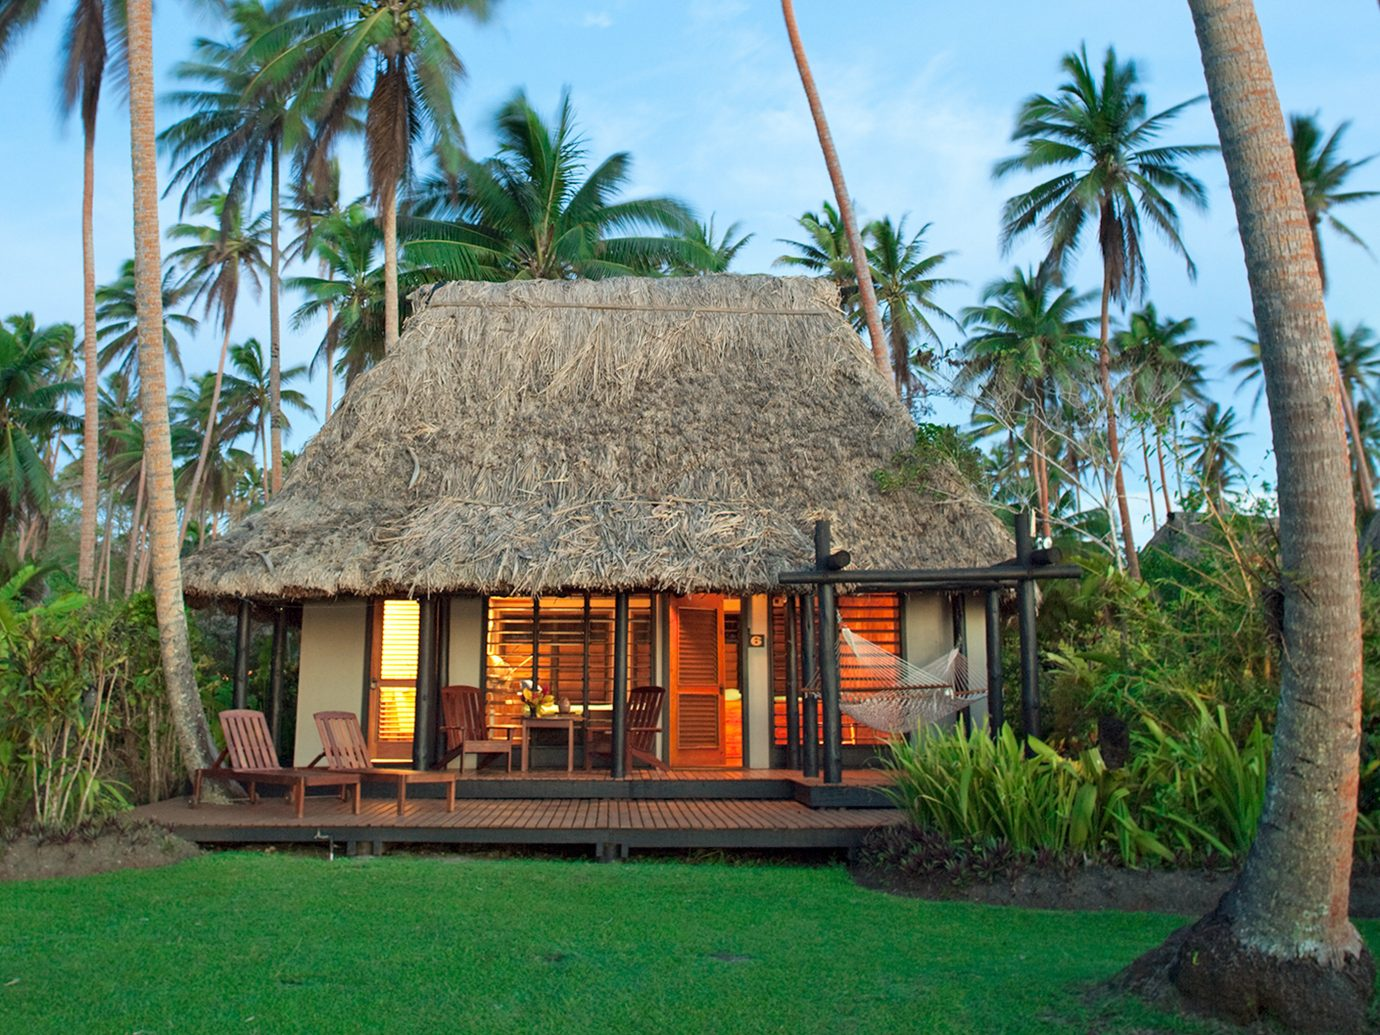 Exterior of a hut at Jean-Michel Cousteau Resort, Fiji